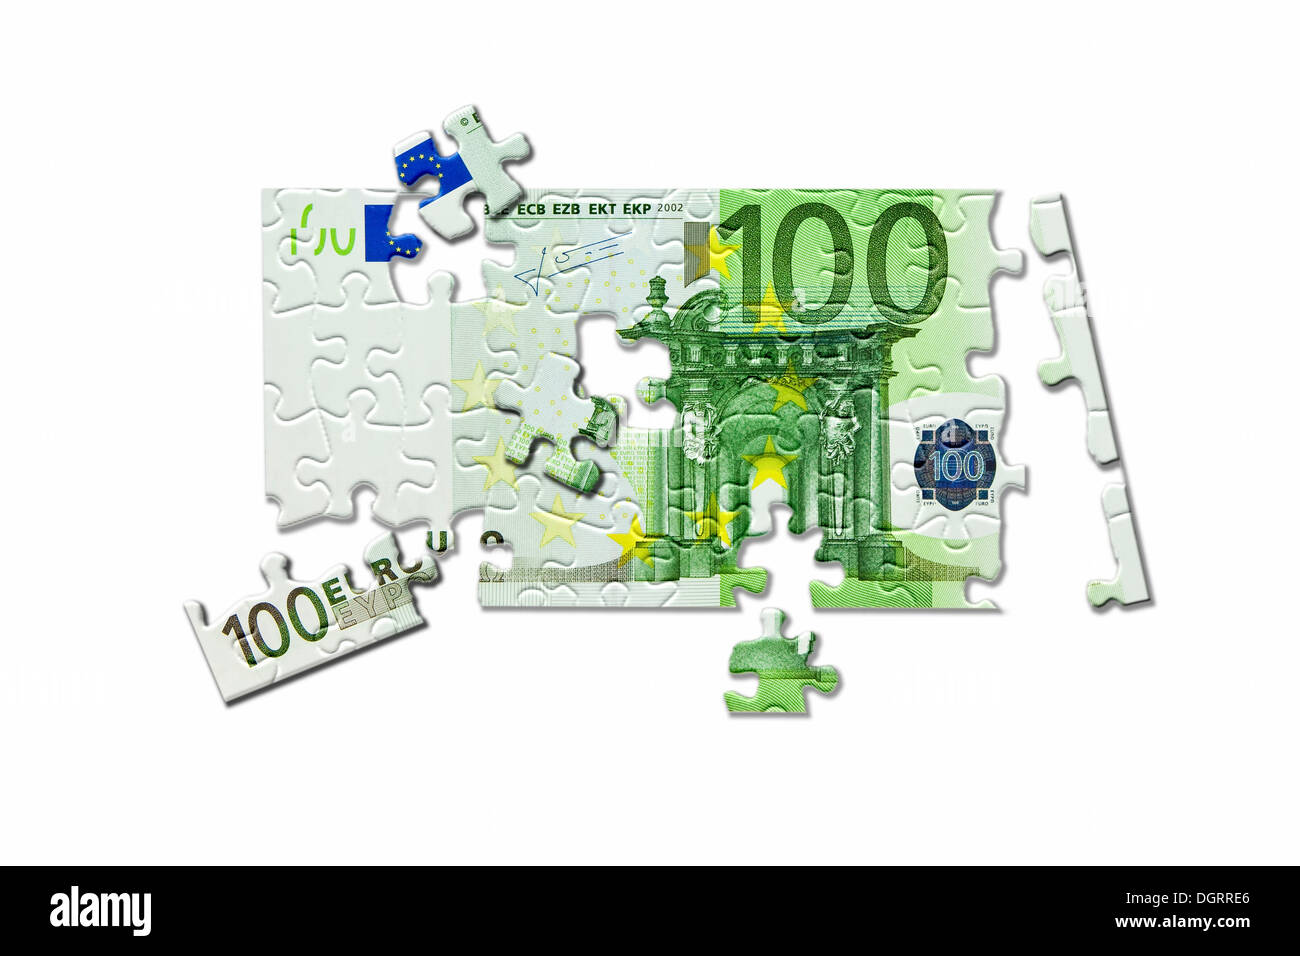 100-Euro banknote dissolving, puzzle, decay of the Euro currency, symbolic image - Stock Image